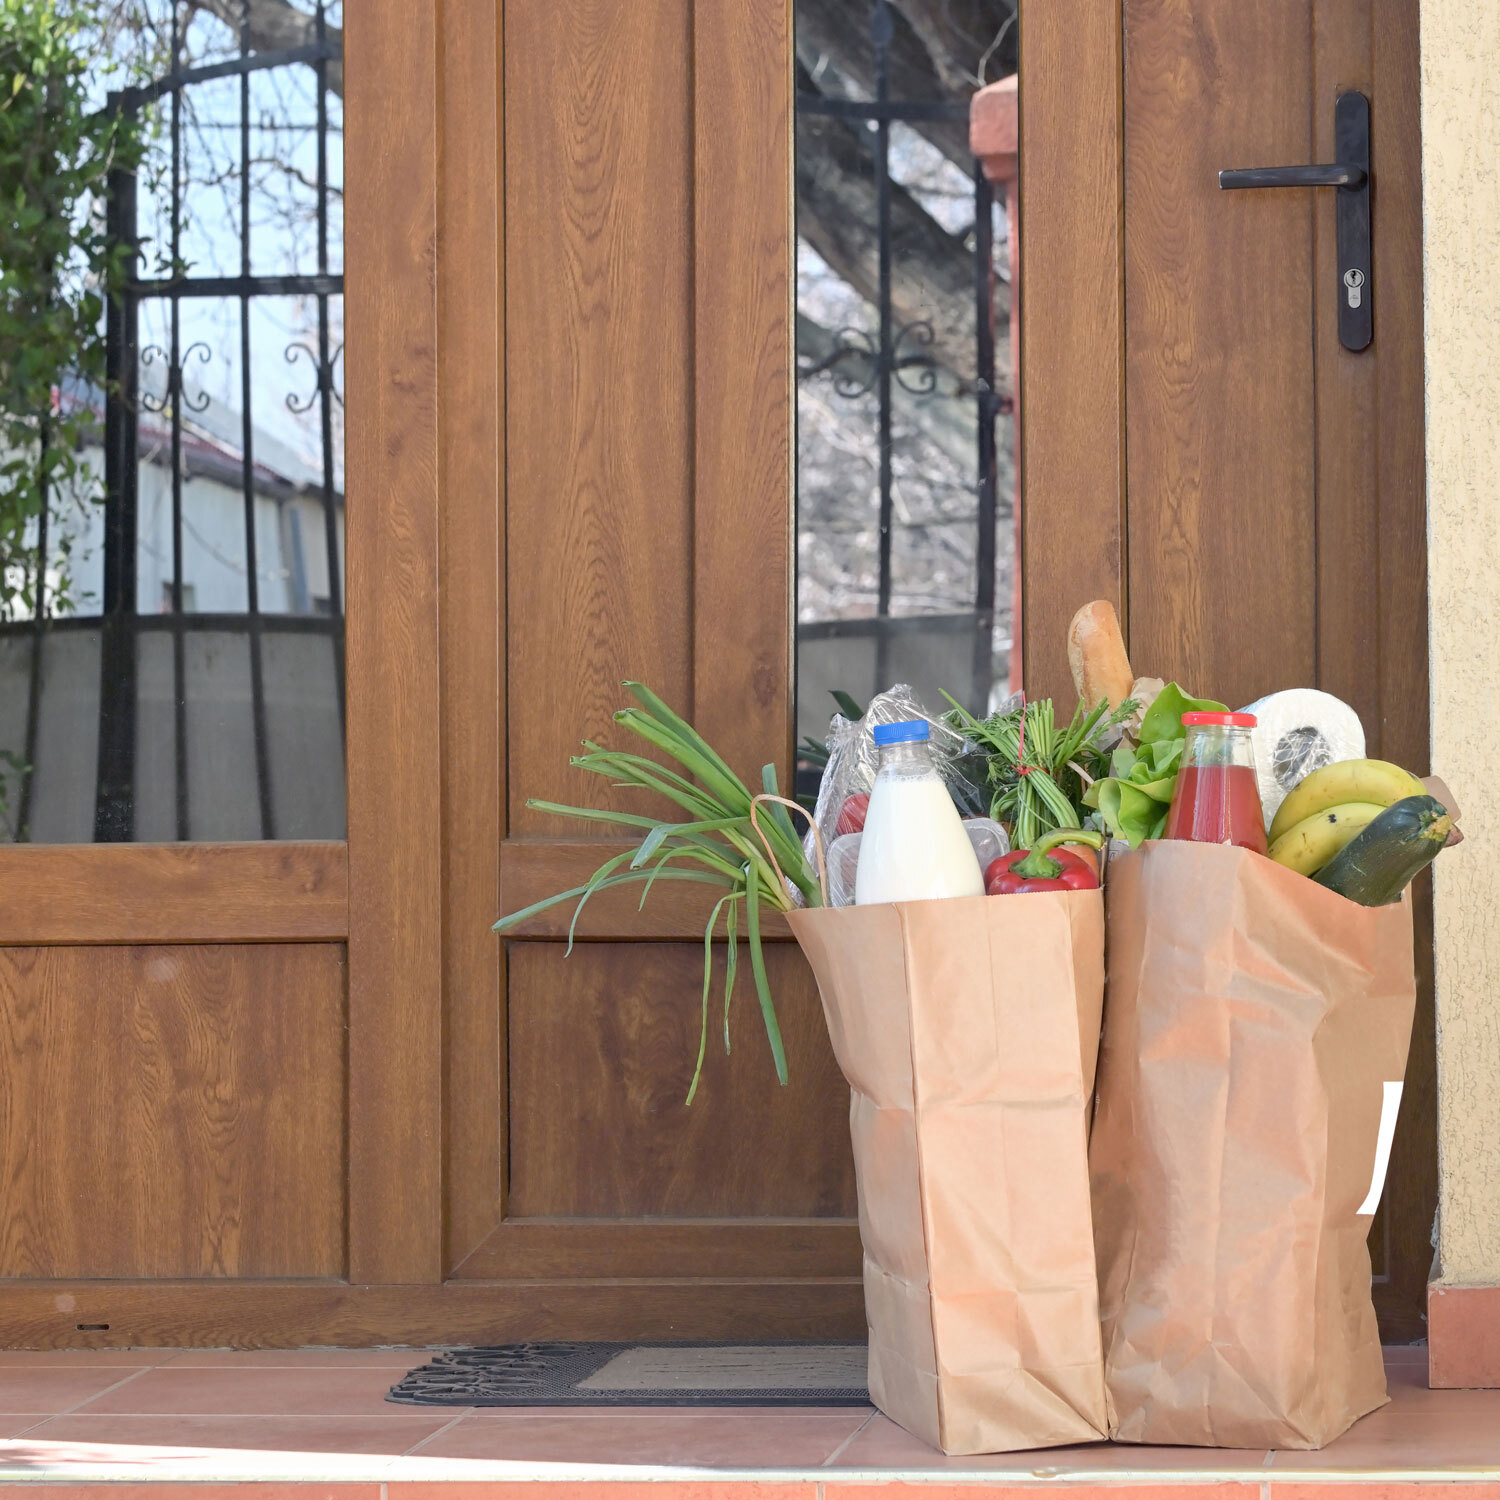 groceries on doorstep